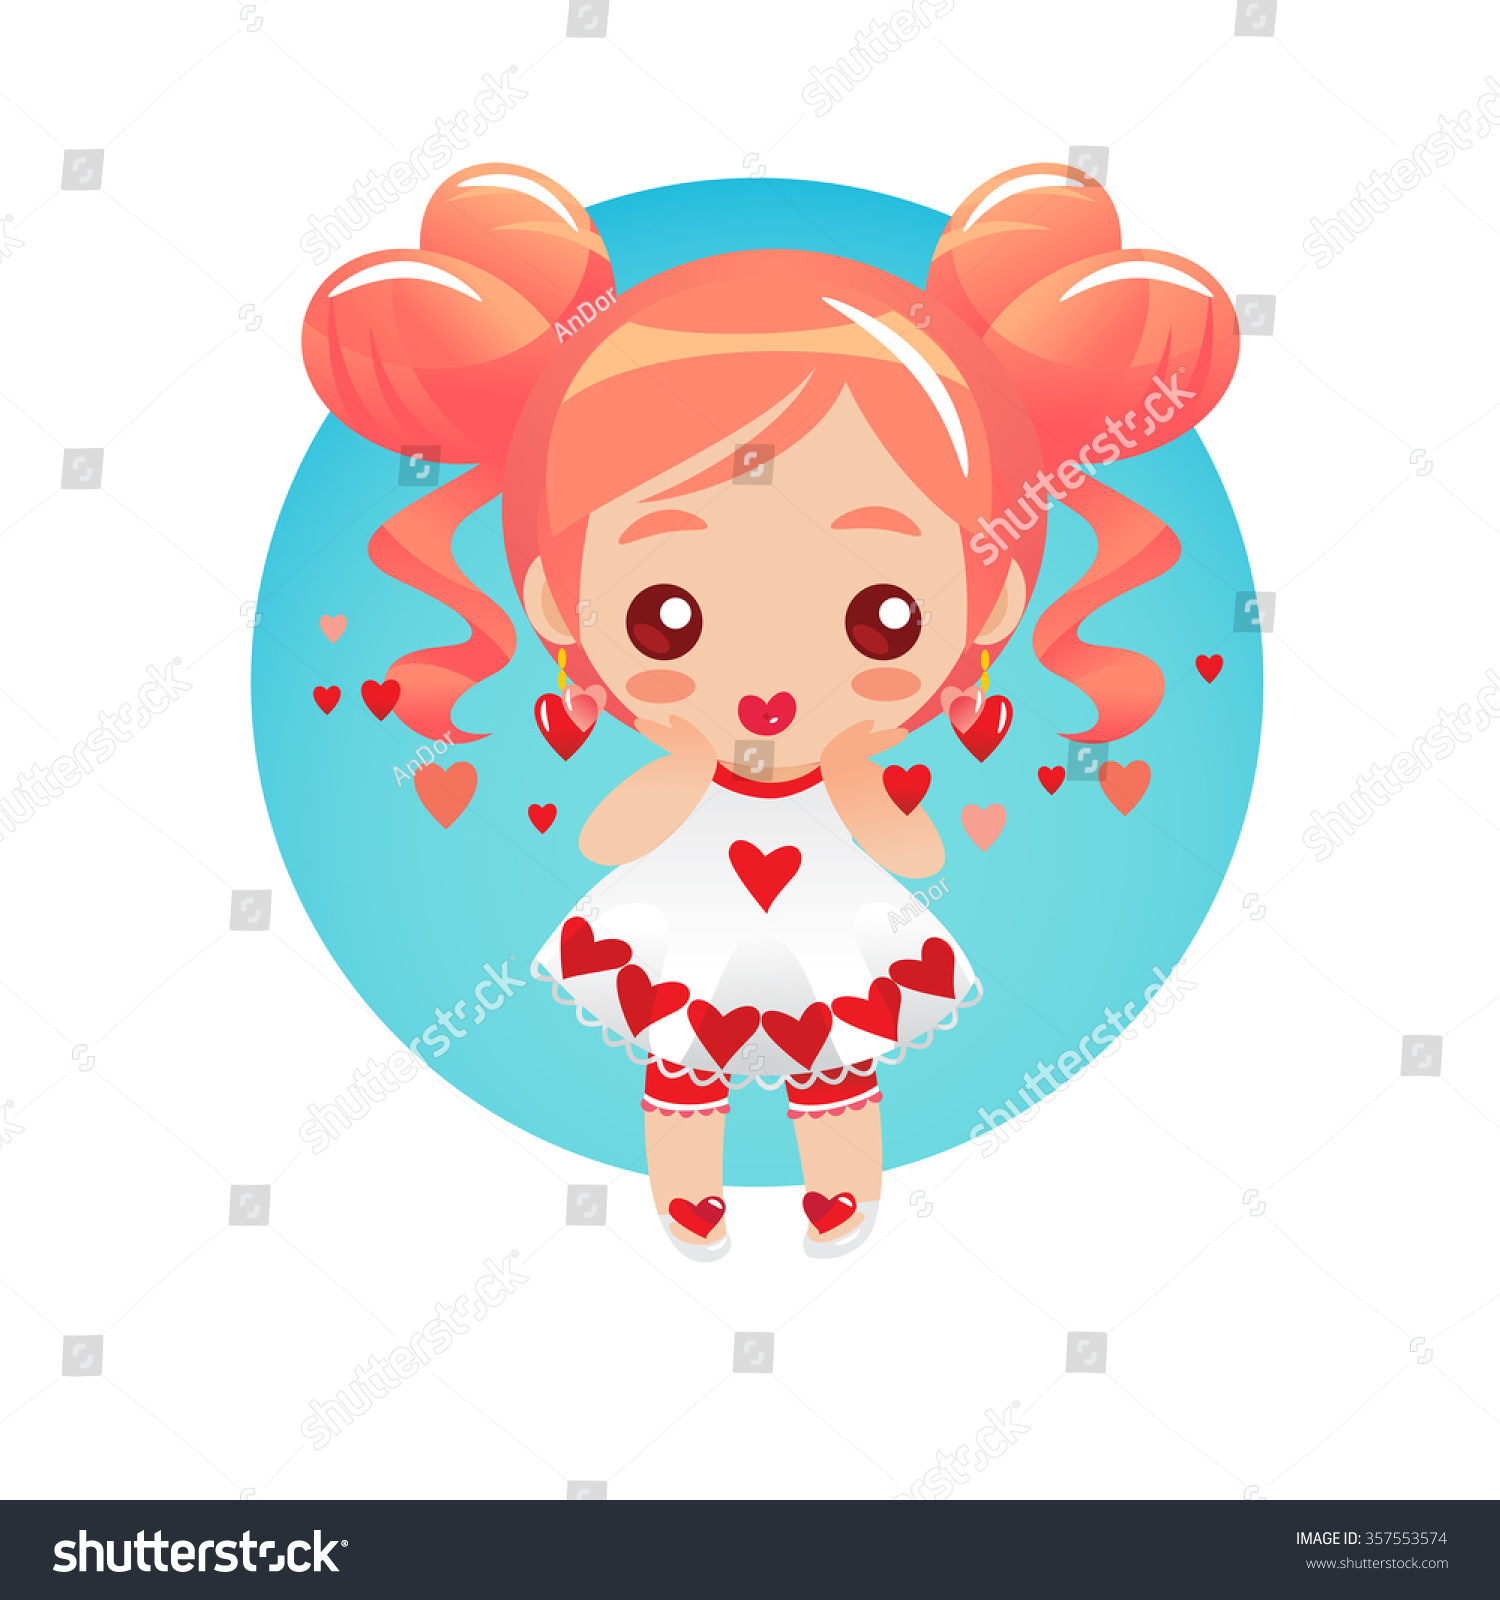 cute little girl with big round eyes royalty free cliparts